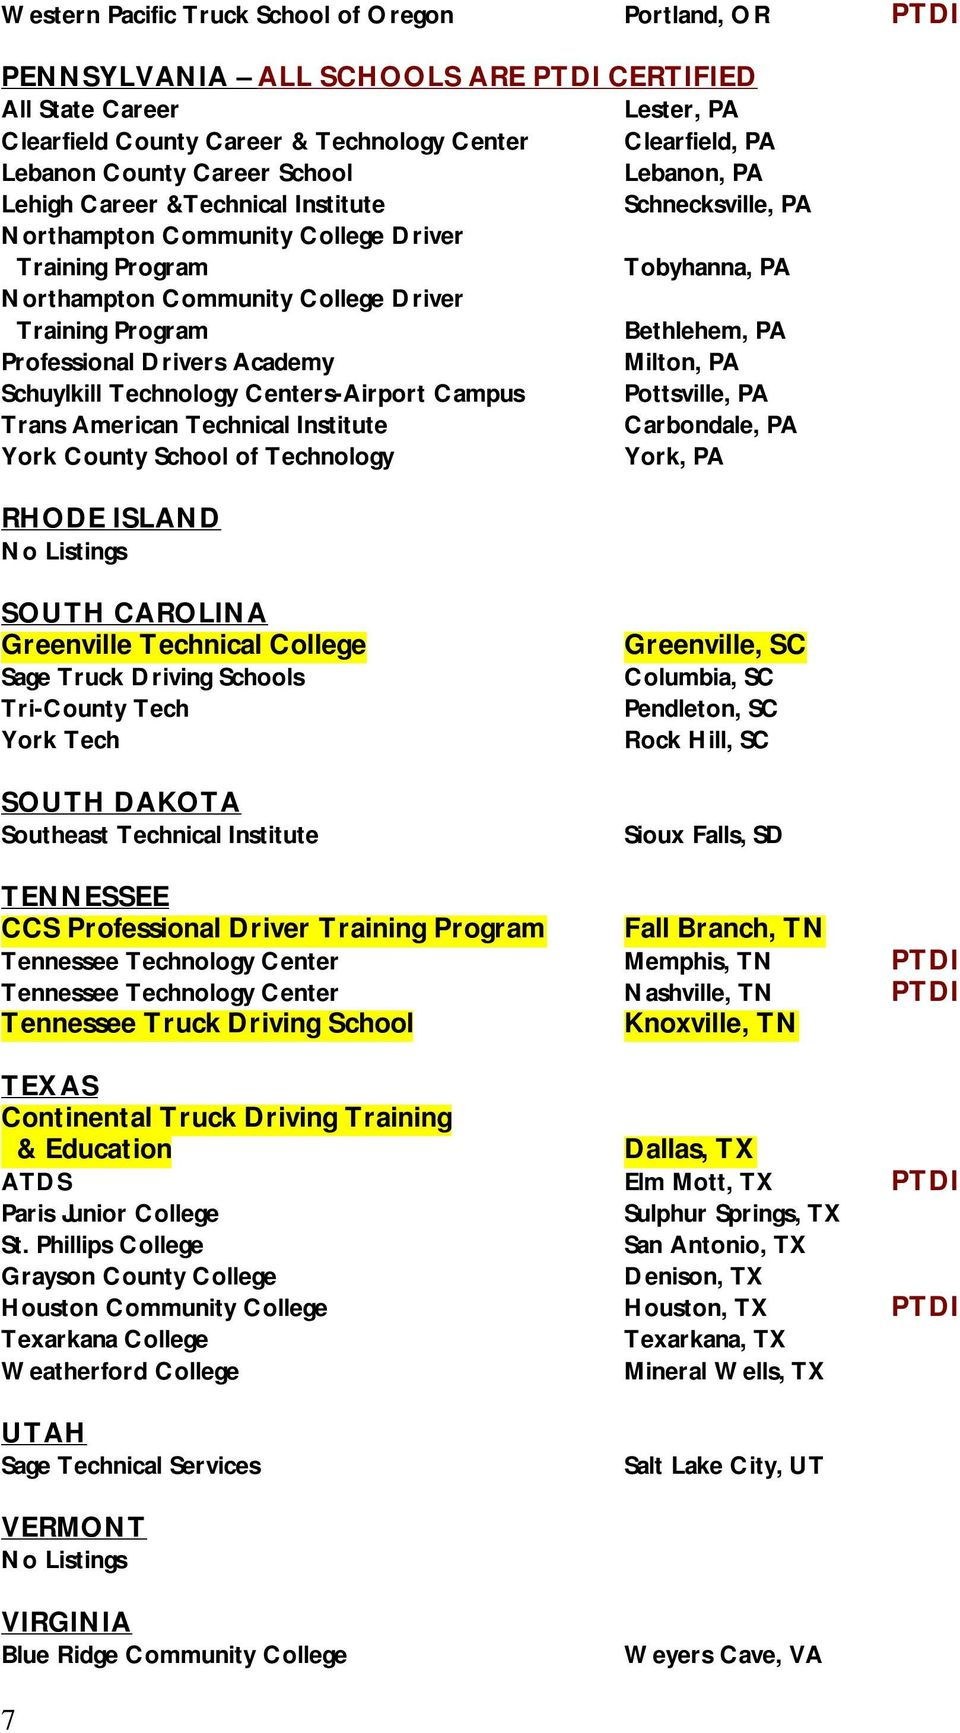 Cdl Truck Driving School Guide A List Of Recommended Cdl Truck